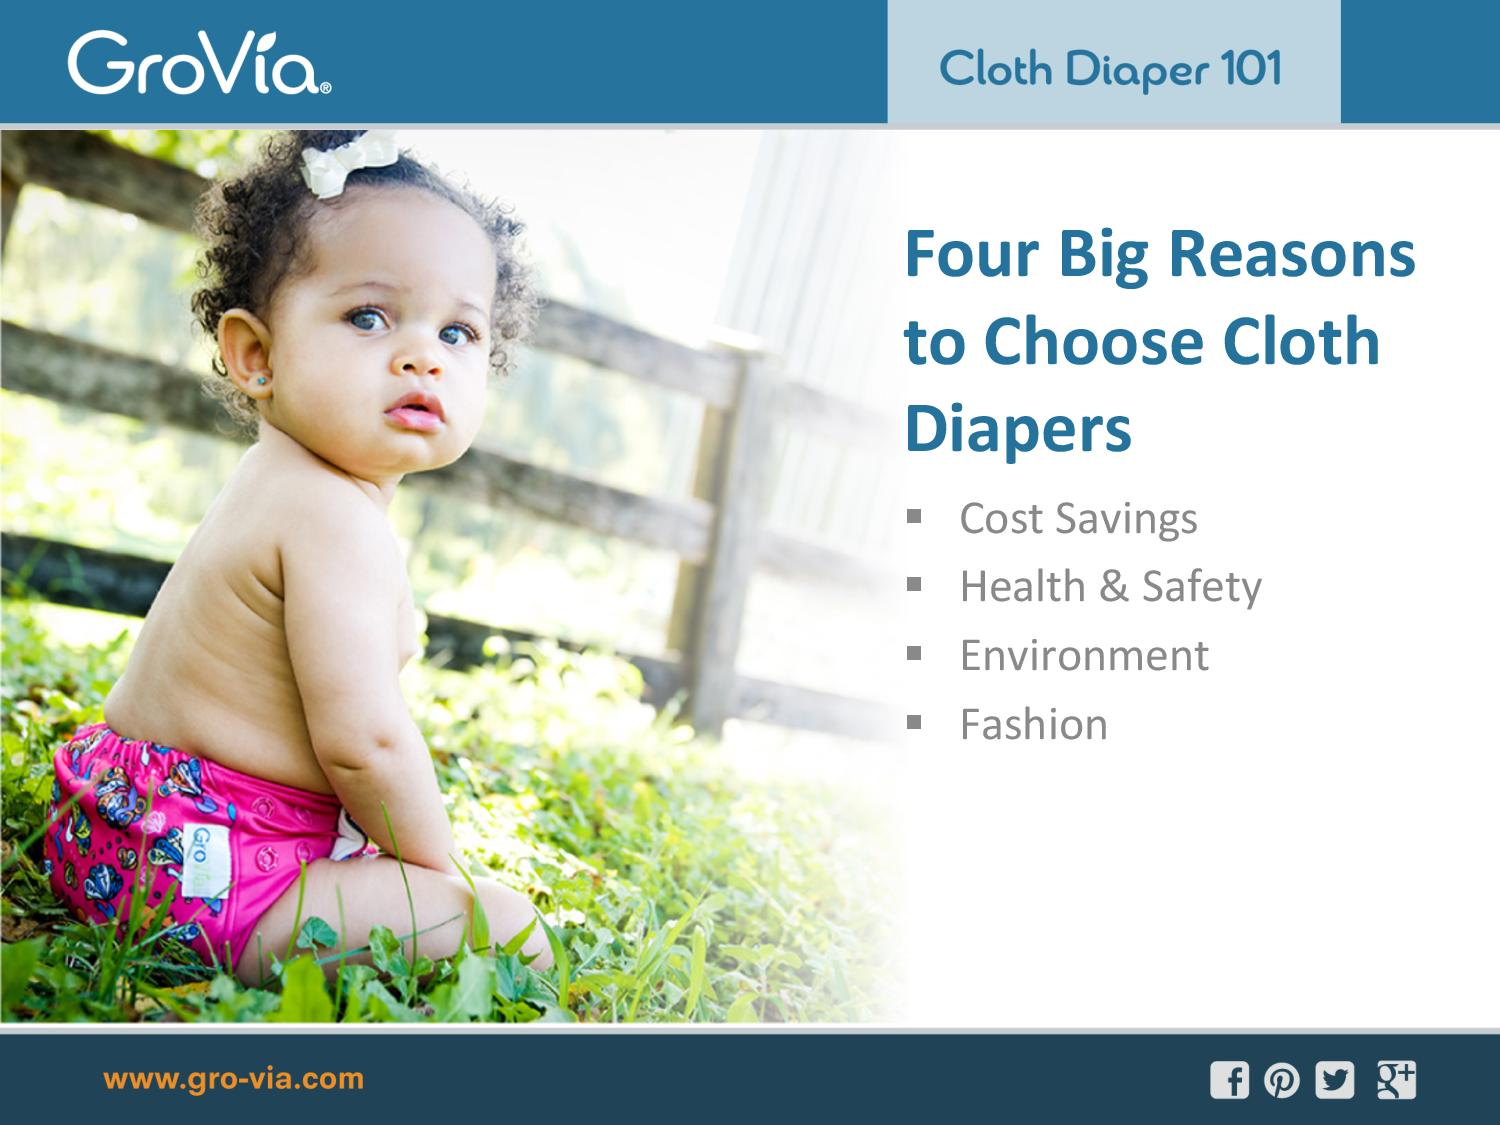 ClothDiapering101_sm-page-002.jpg